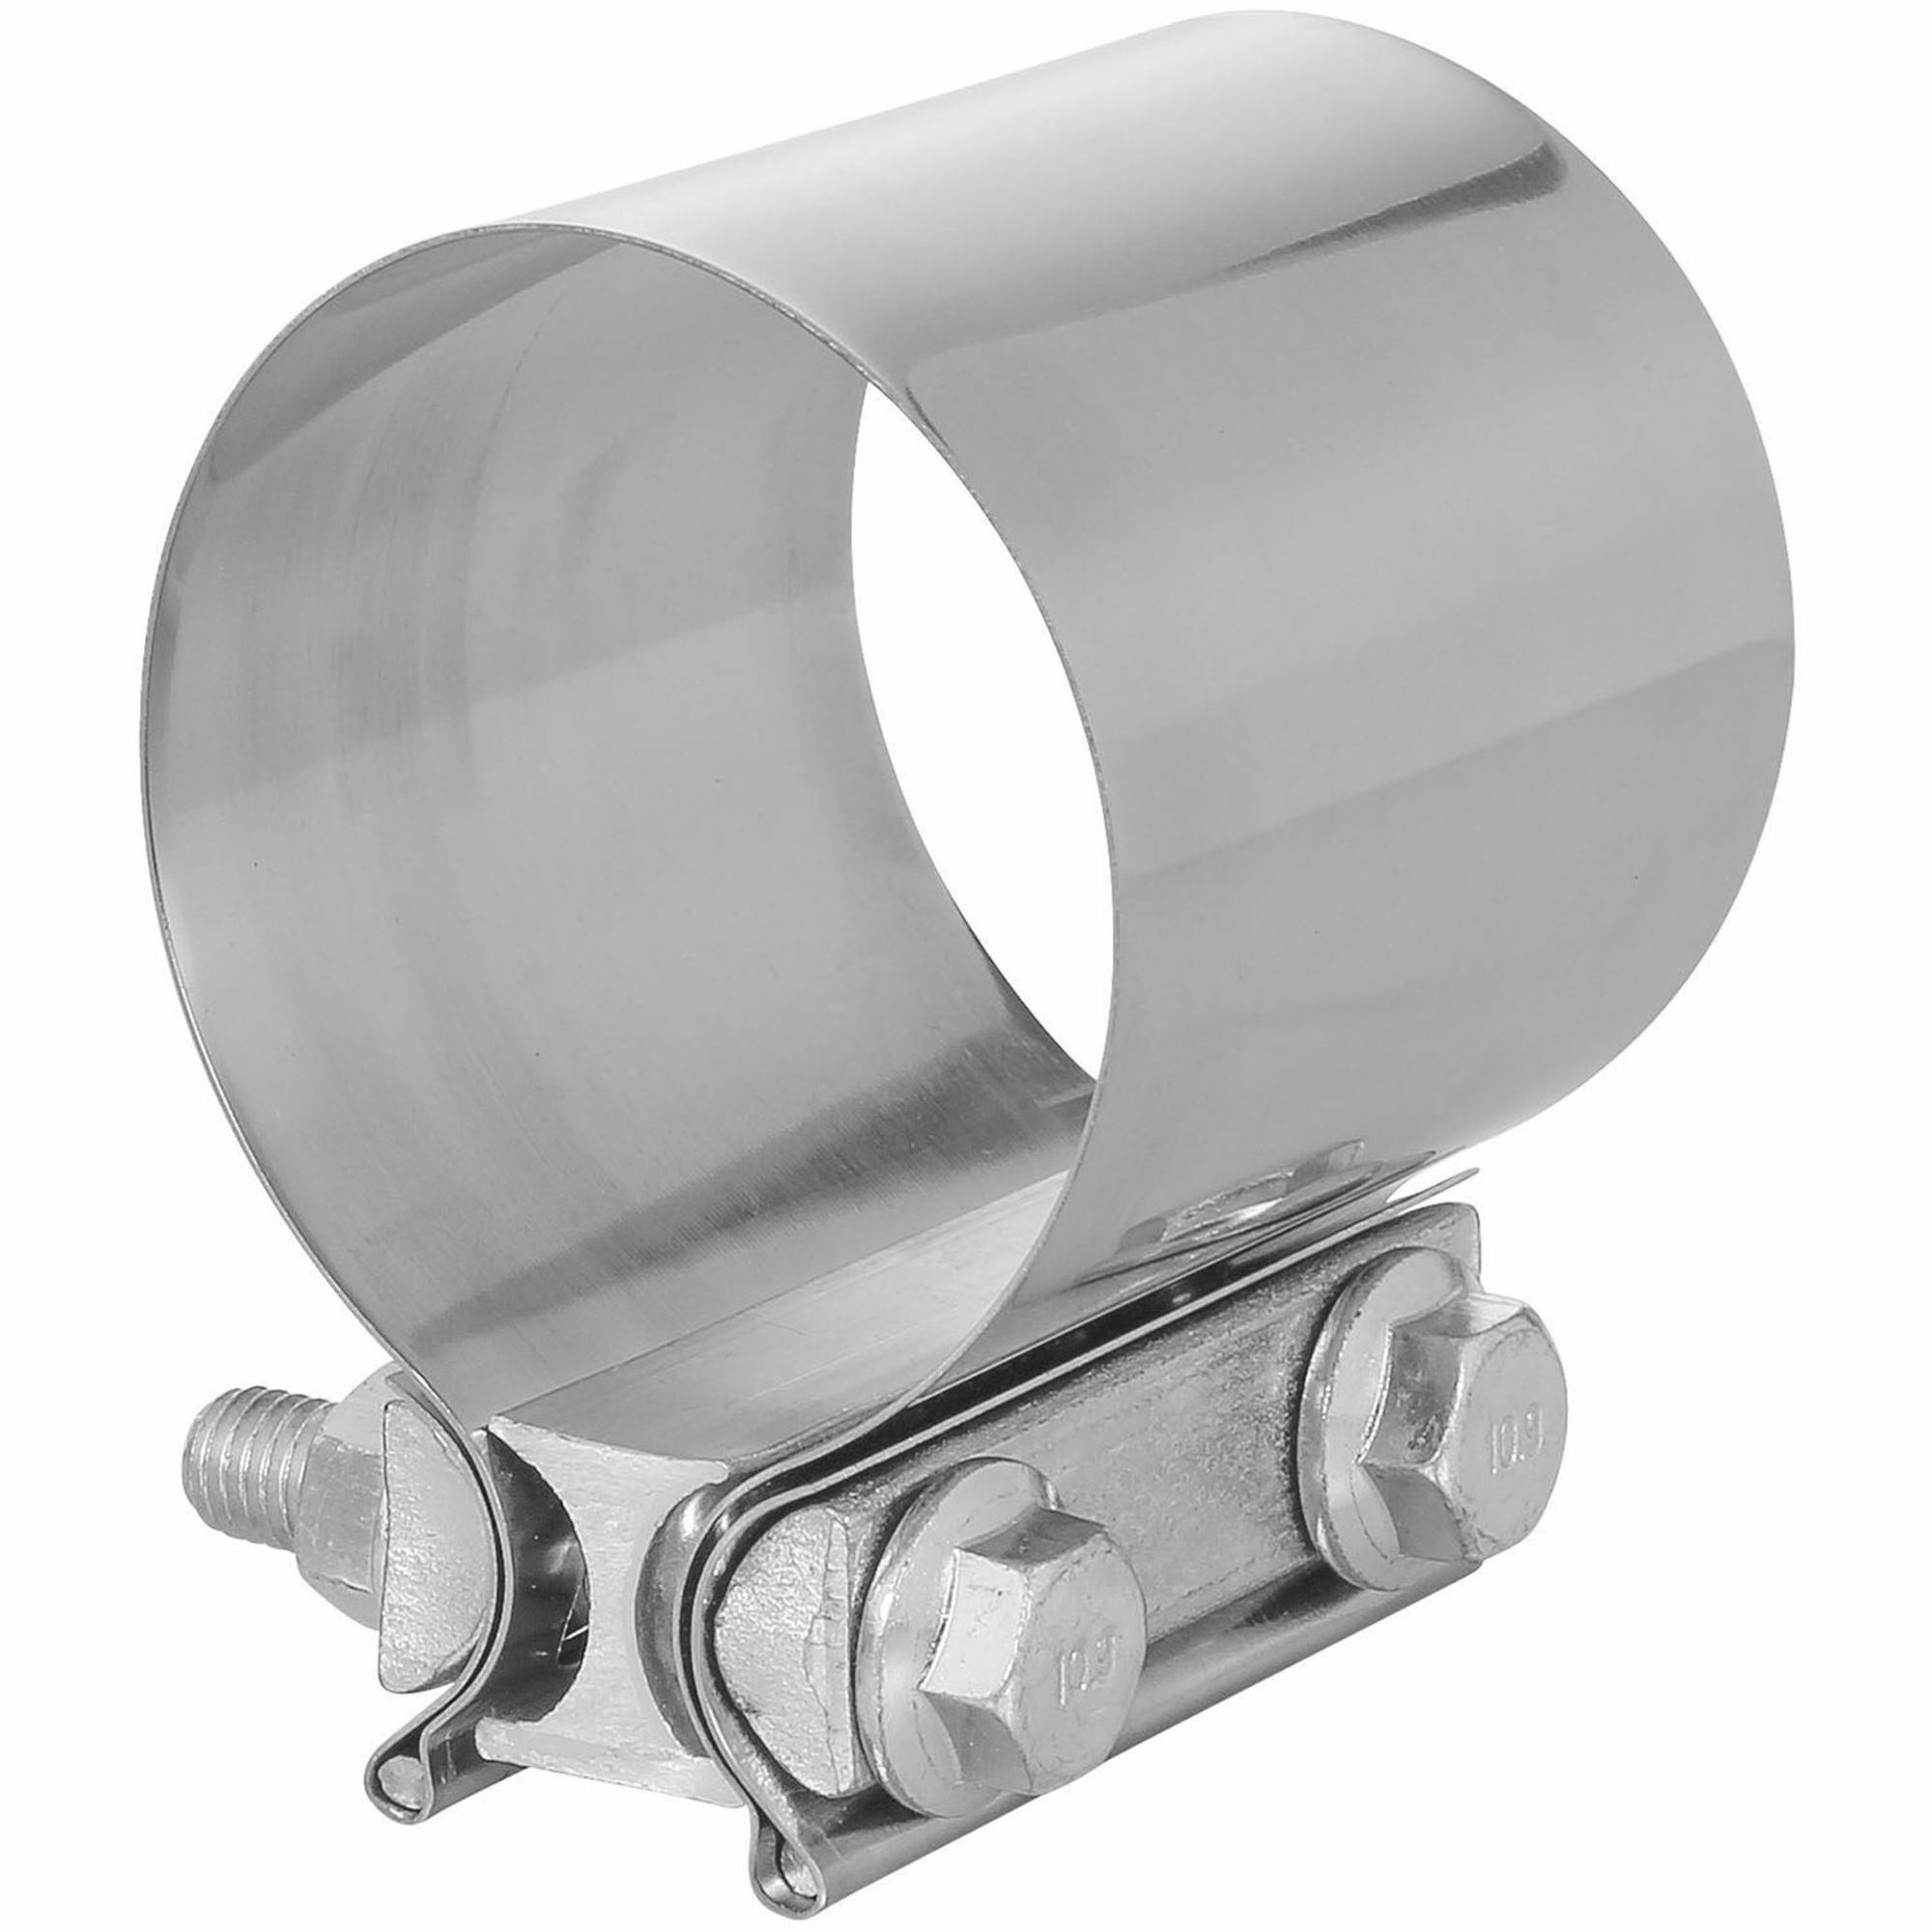 Picture of TOTALFLOW TF-JB62 Butt Joint Exhaust Muffler Clamp Band | 4 Inch